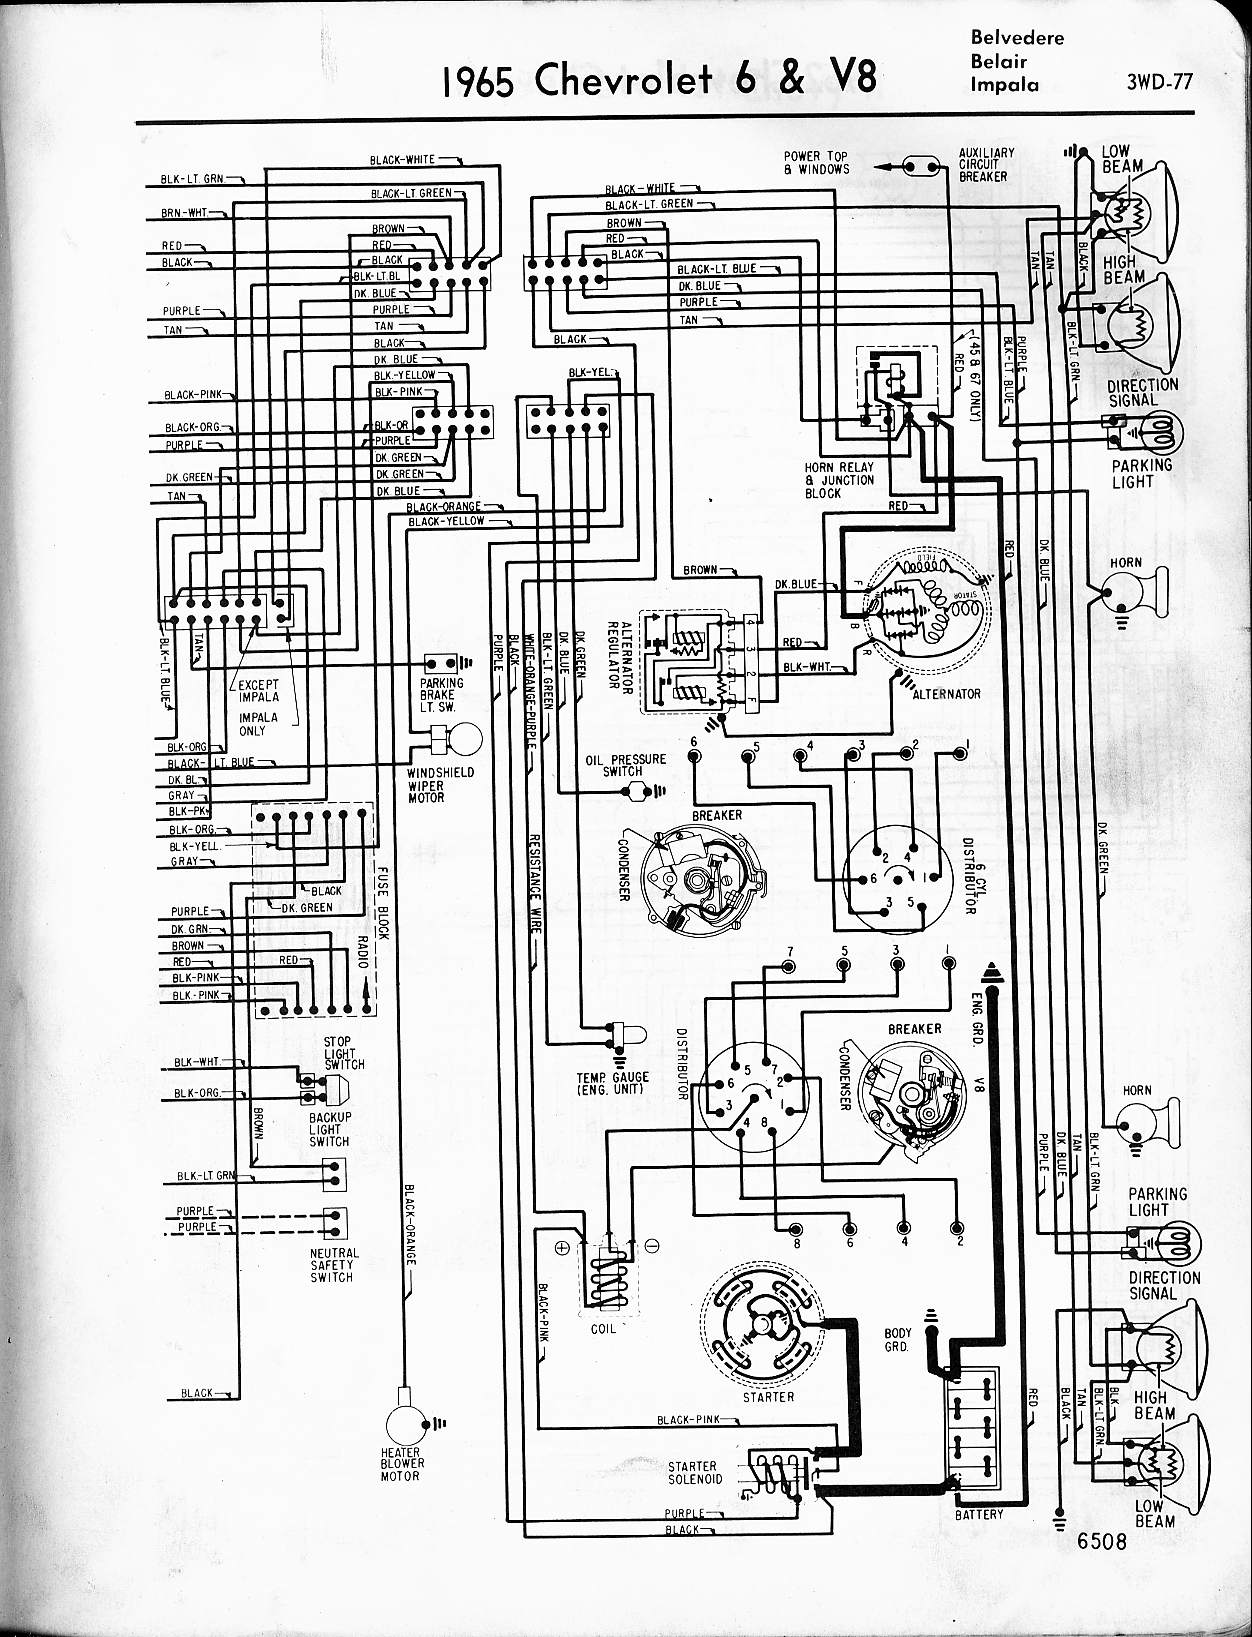 MWireChev65_3WD 077 1966 impala wiring harness 1961 impala wiring harness \u2022 free 2014 Impala Wiring Diagram Schematic at cos-gaming.co